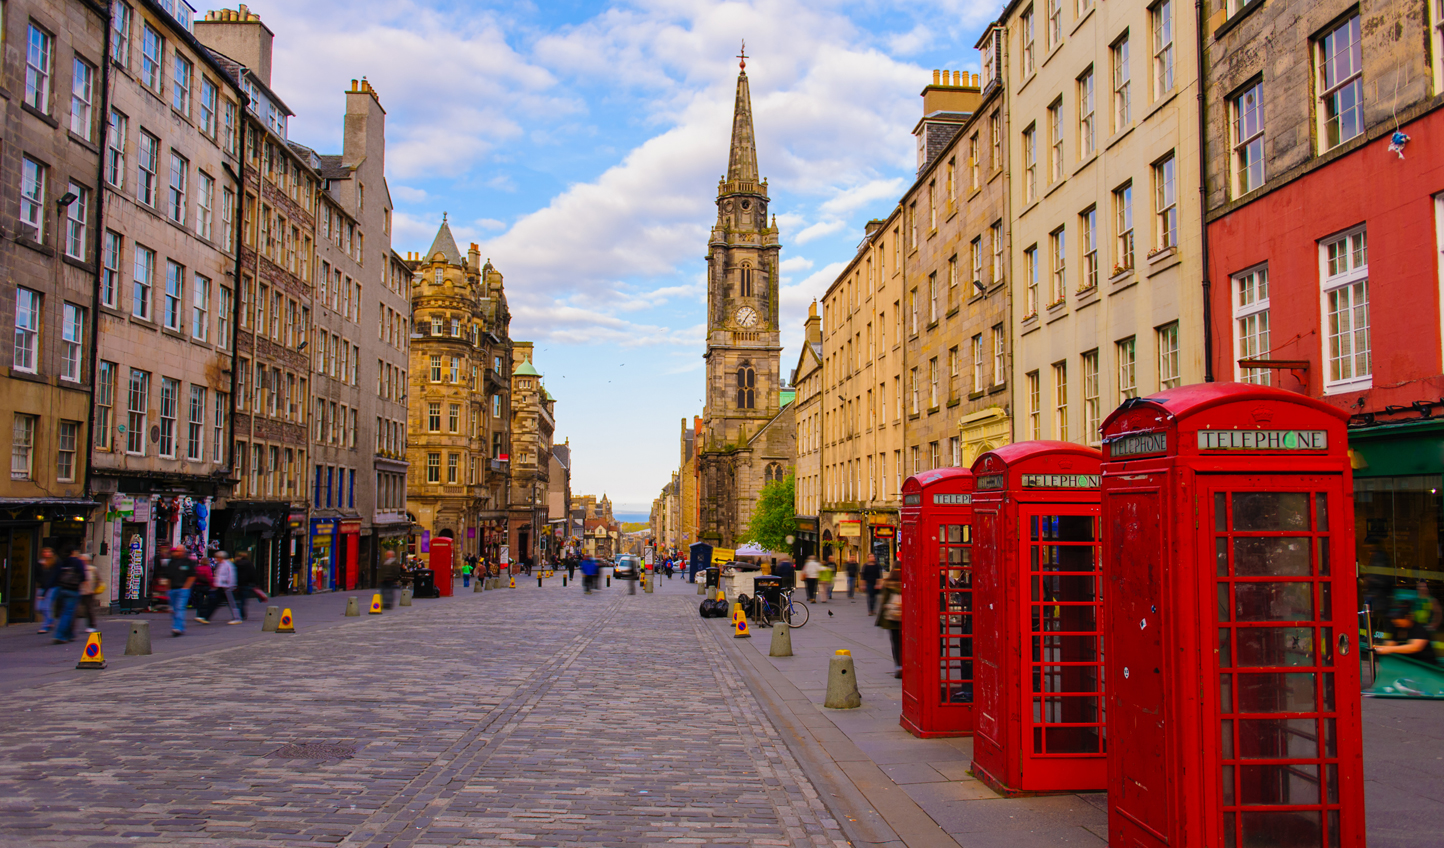 Take a walk up the Royal Mile